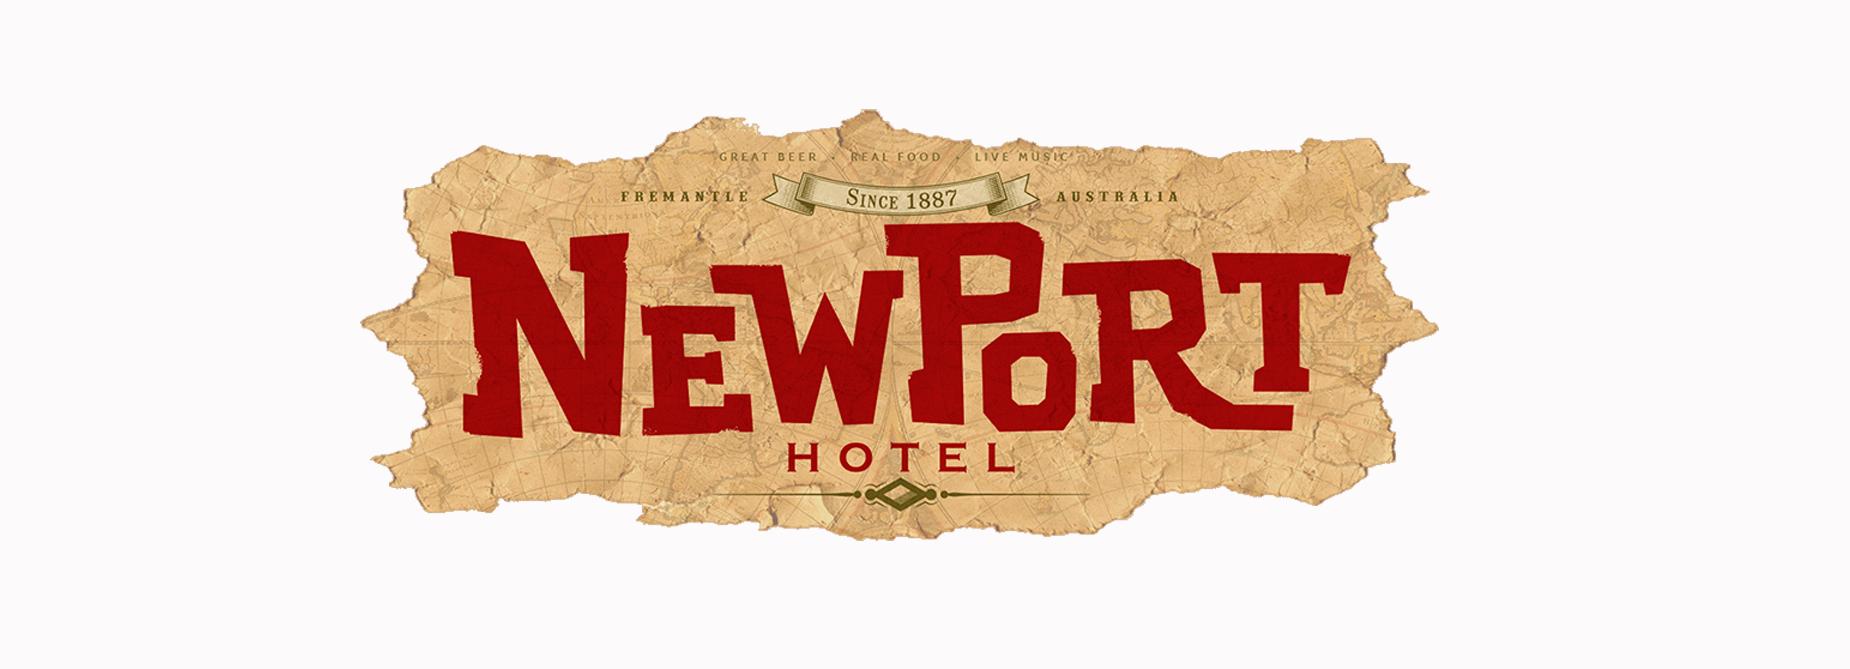 The Newport Hotel Logo